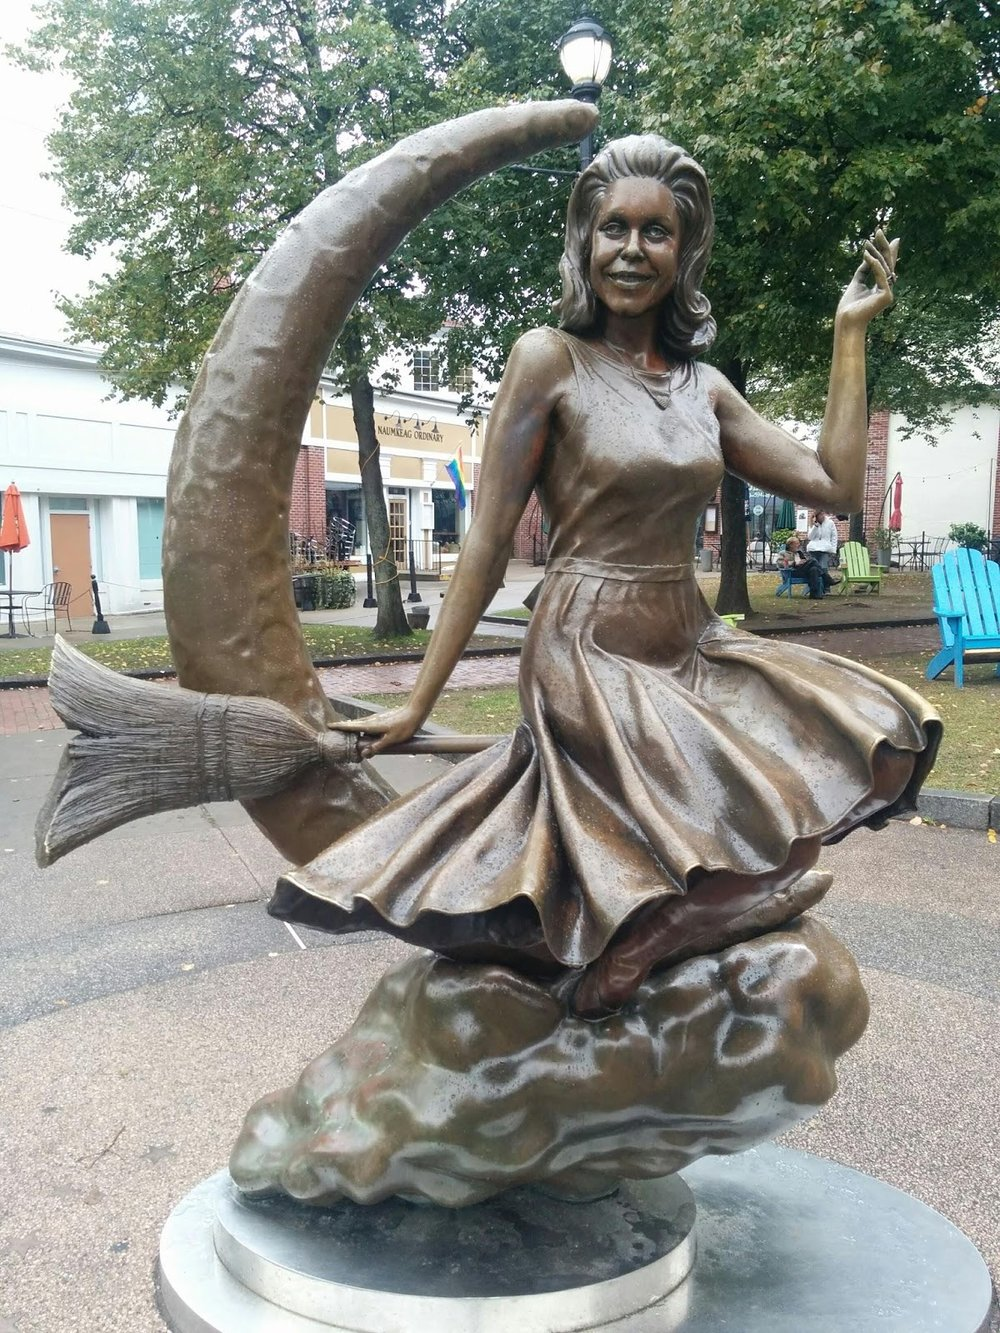 Next Blog… - Finding the magic in Salem!